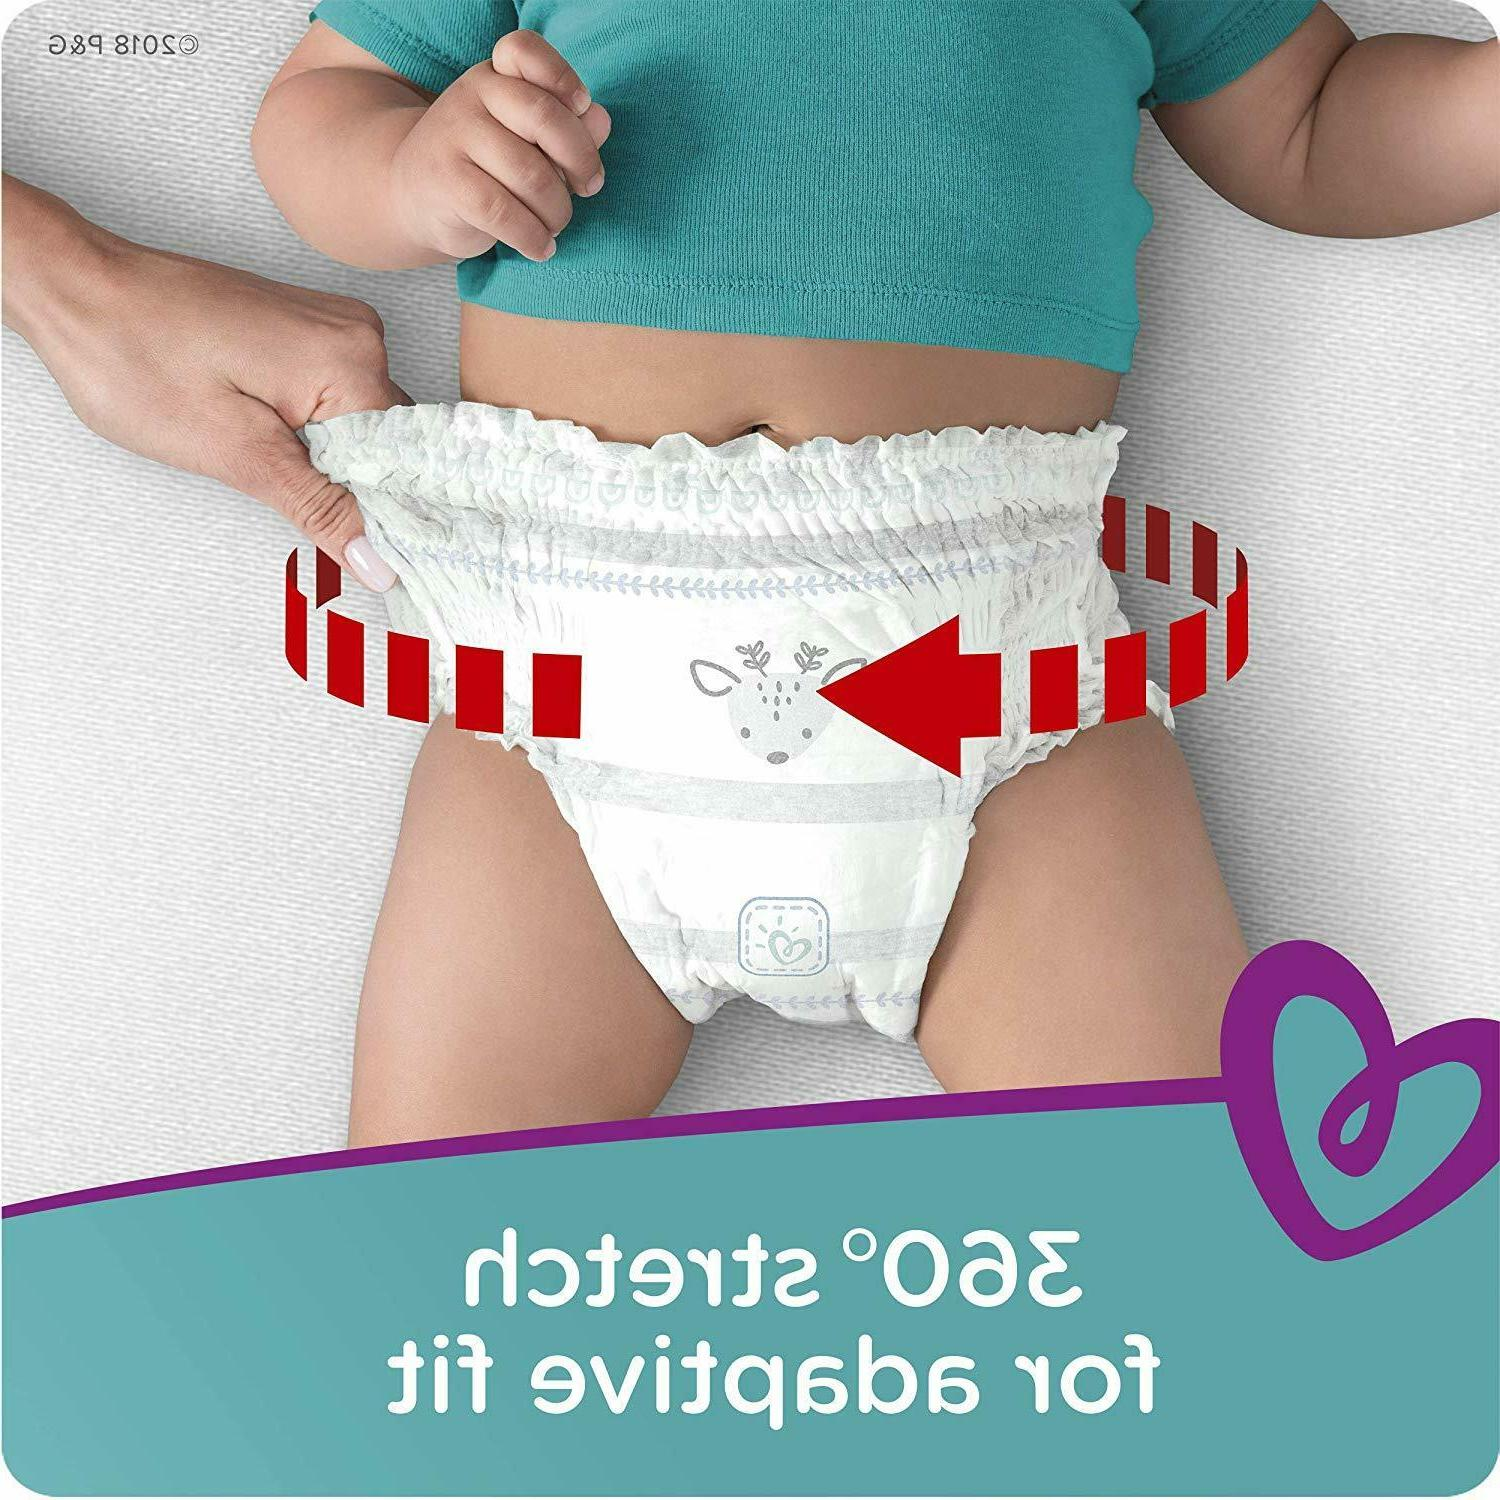 Pampers Cruisers 360 Size 4, CHEAP!!! NEW